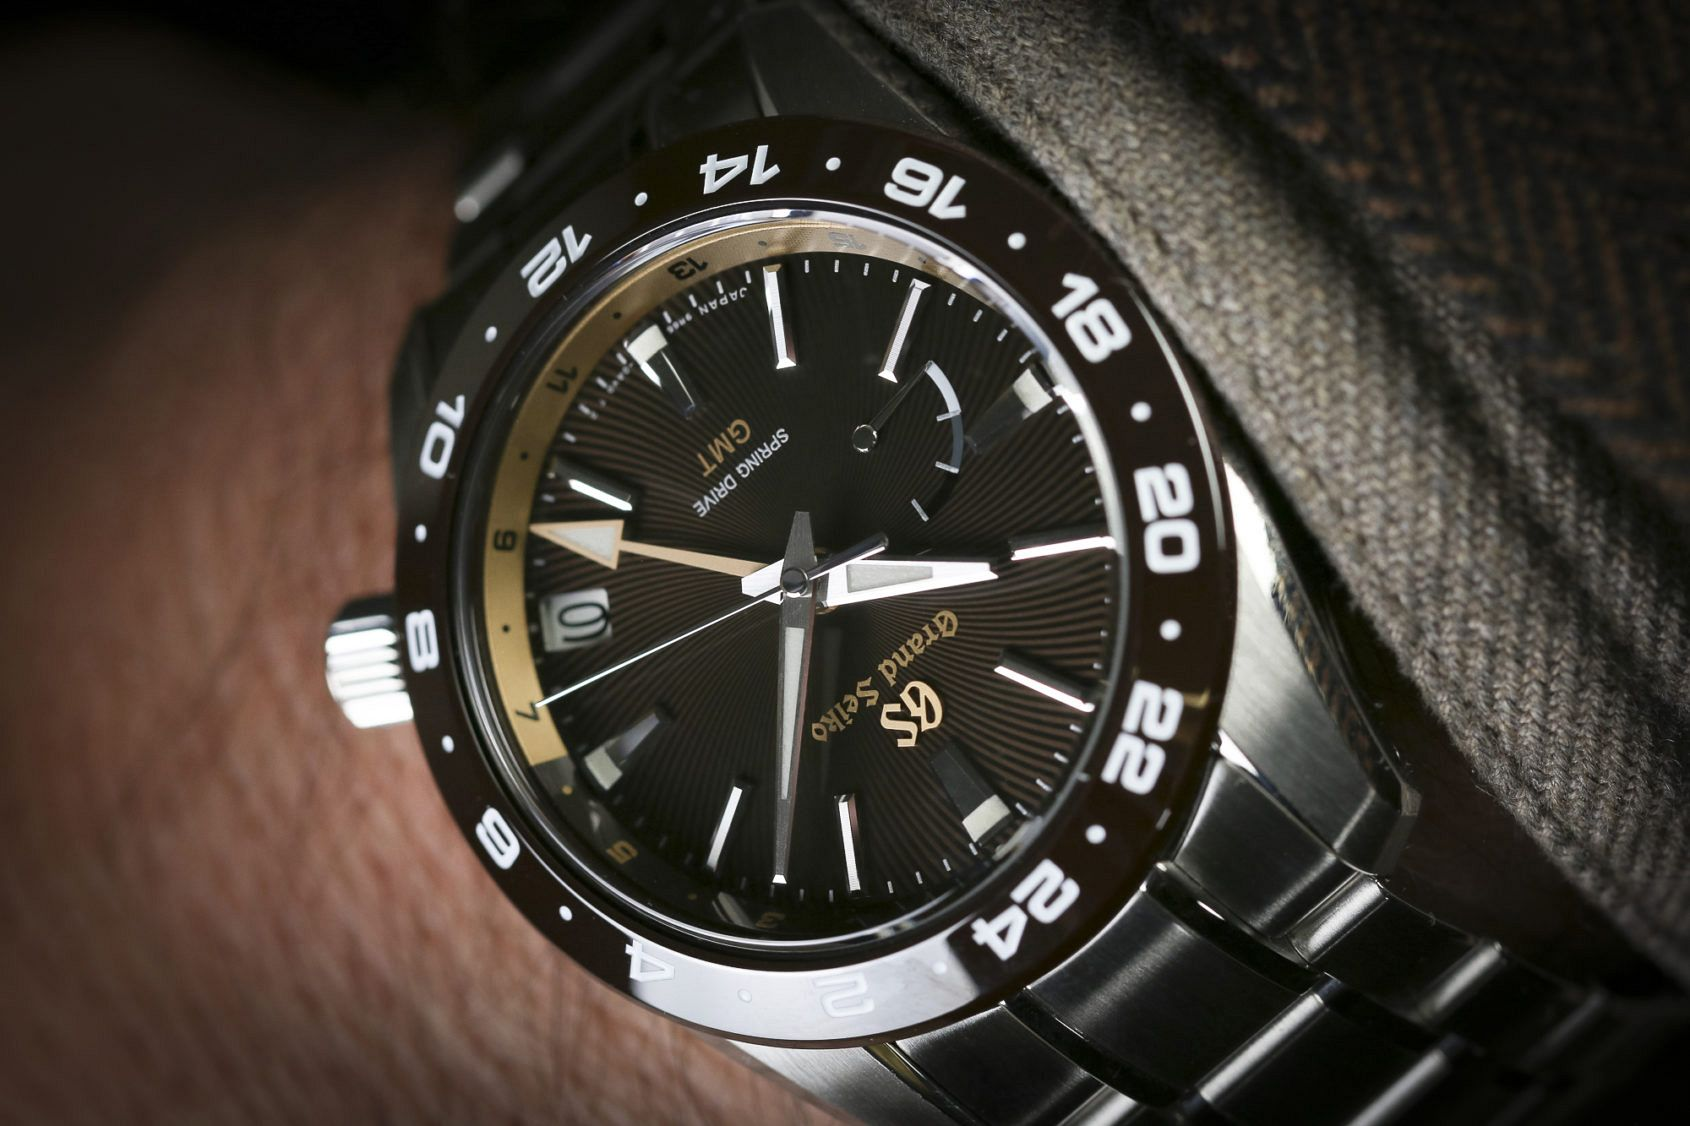 INTRODUCING: The Grand Seiko SBGE263 GS9 Club US Limited Edition